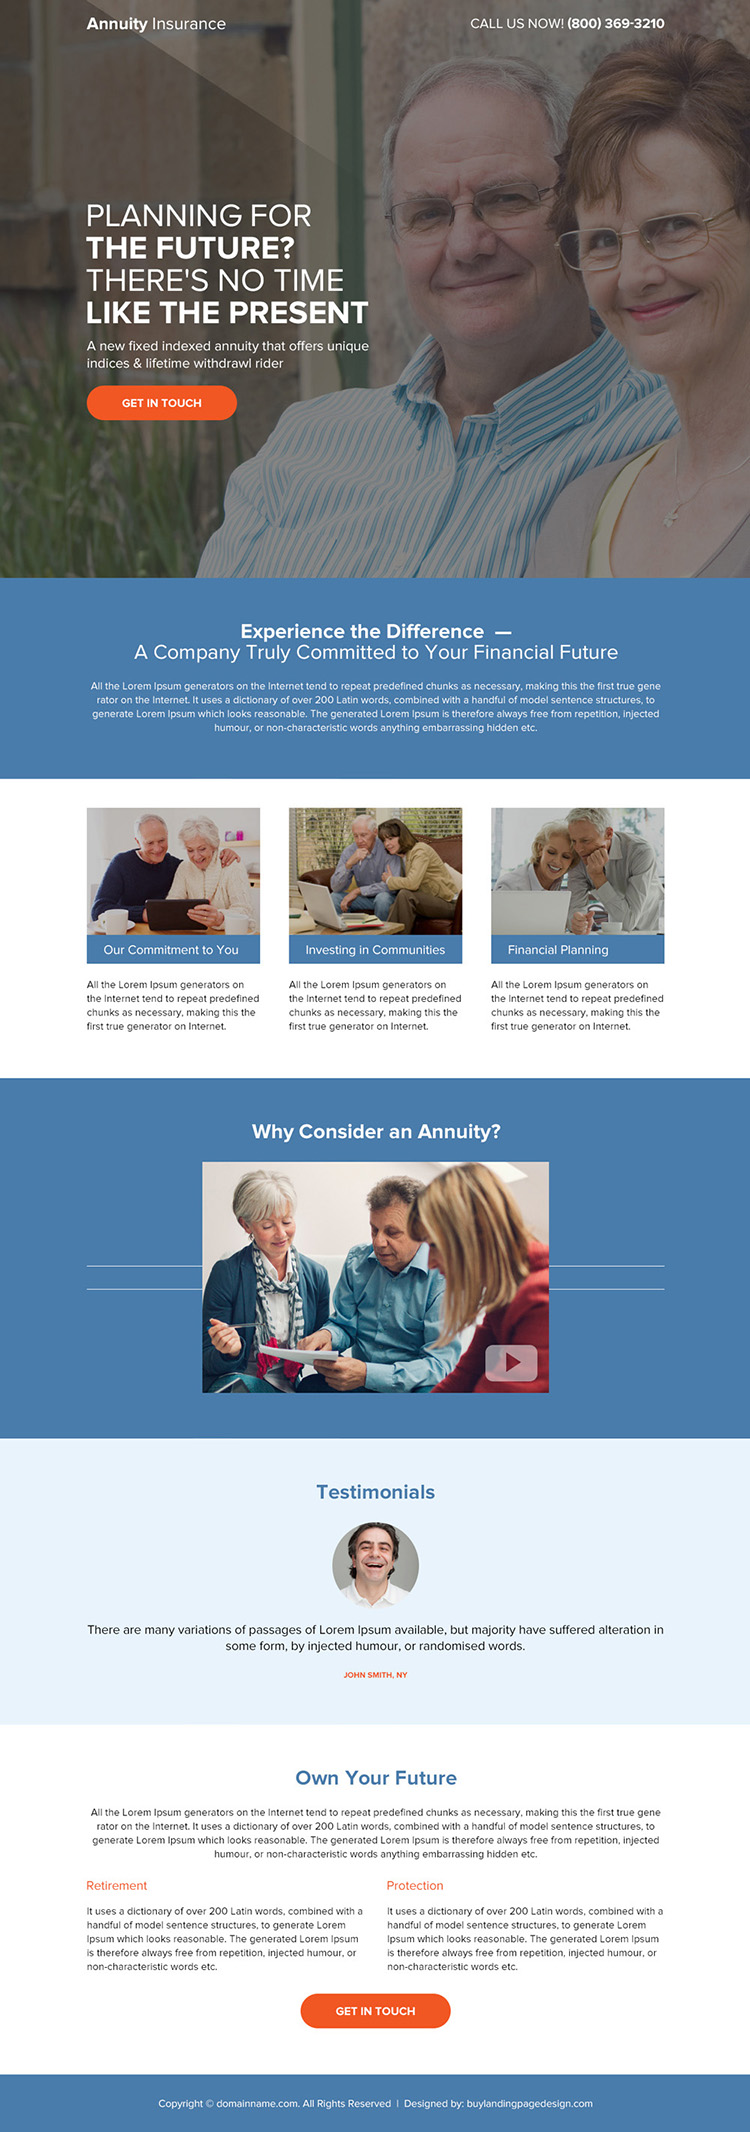 annuity insurance planning bootstrap landing page